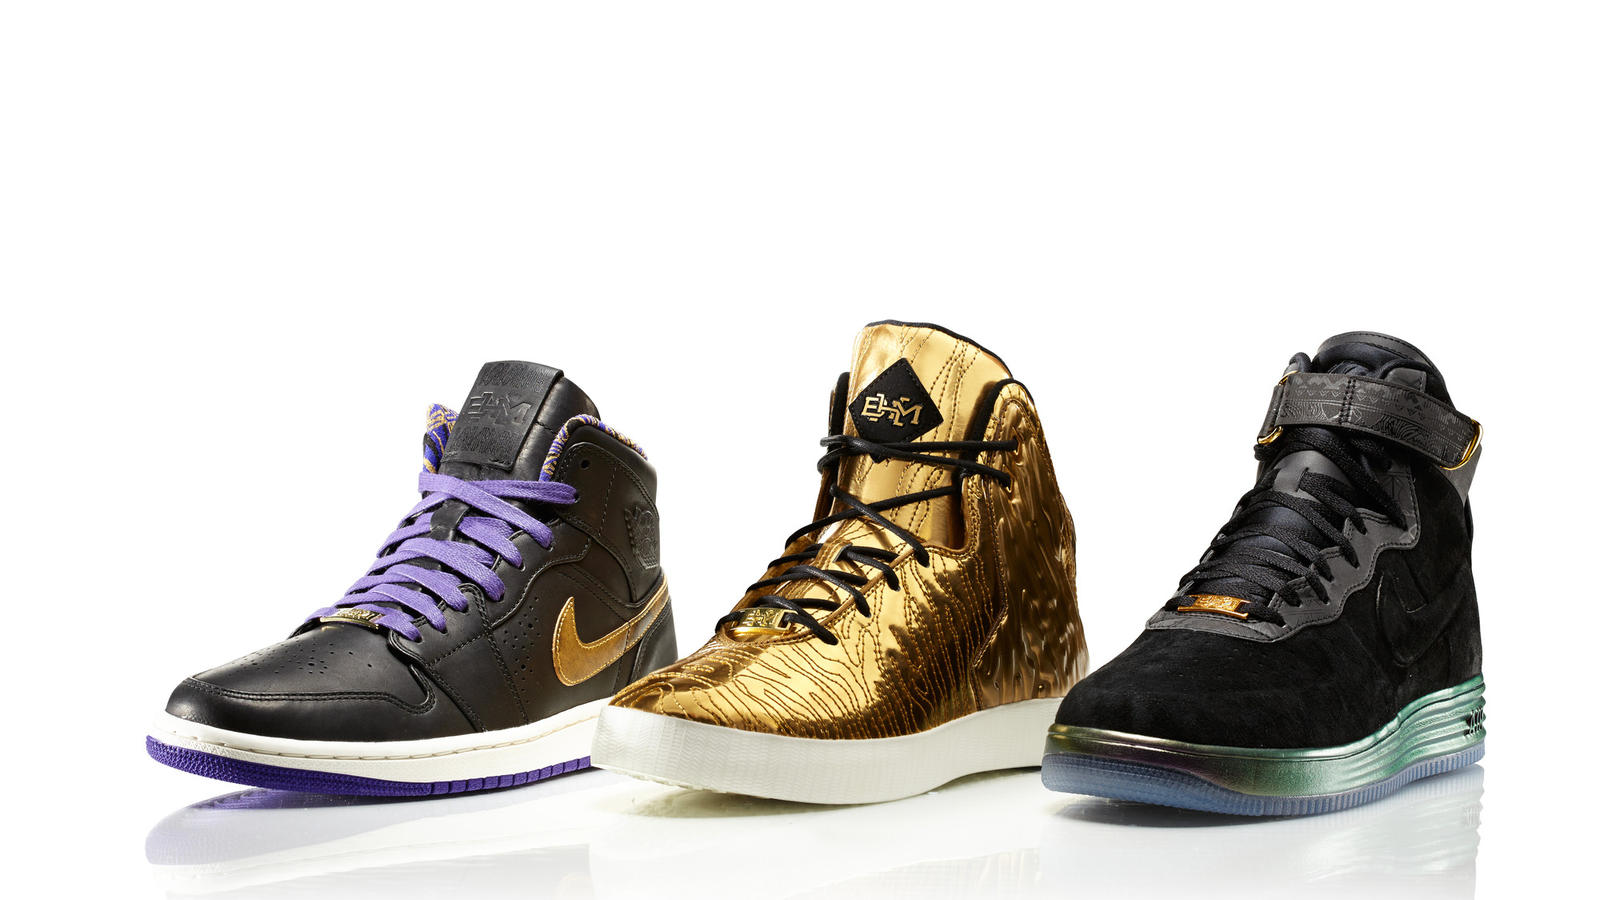 nike_sp14_bhm_collection_0026